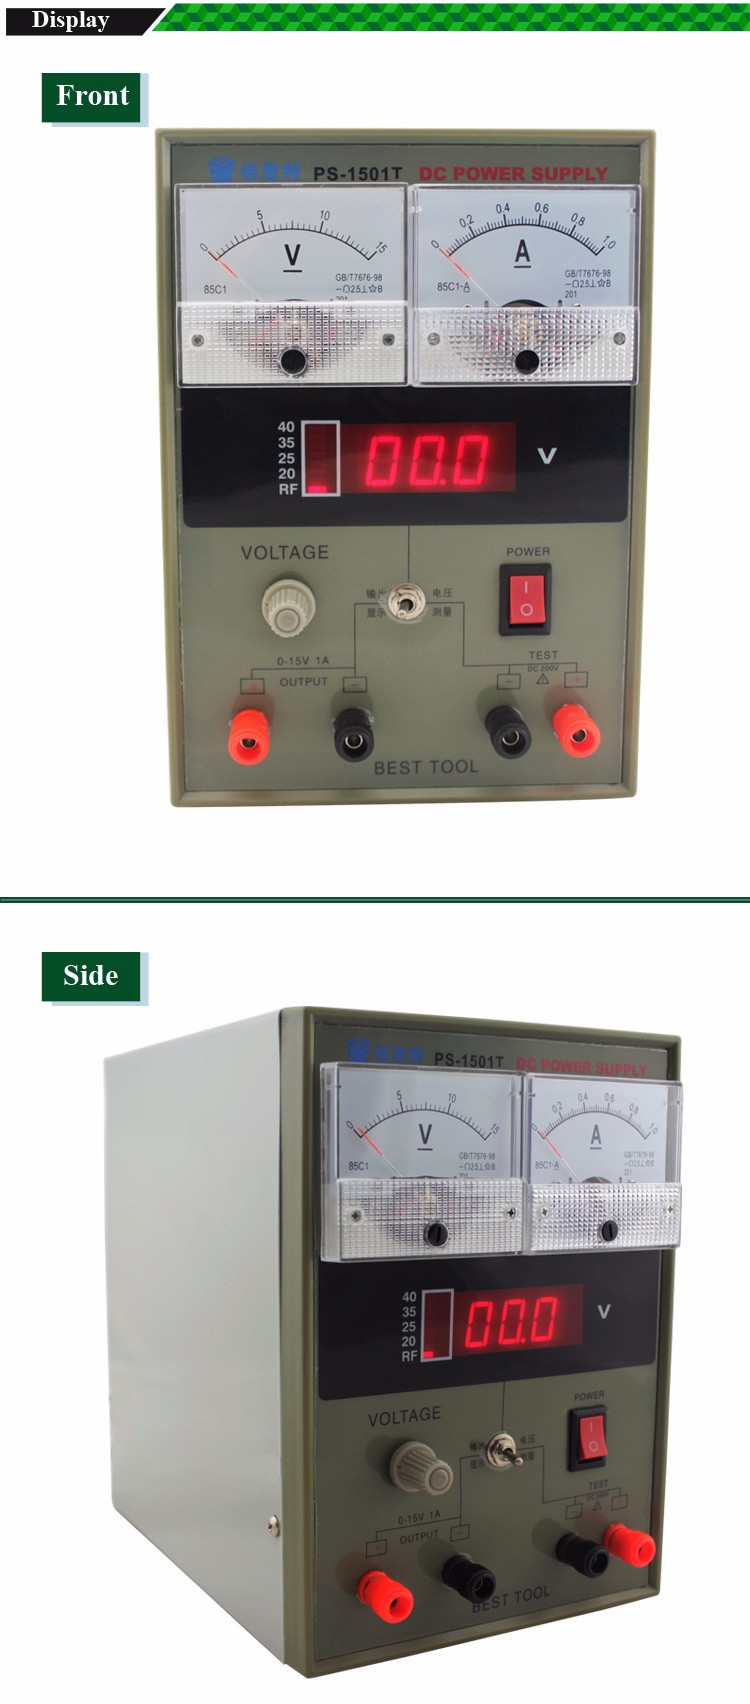 Best 1501t Power Test Regulated Dc Supply For Mobile Phone 0 15v 1a Repair And Electronic